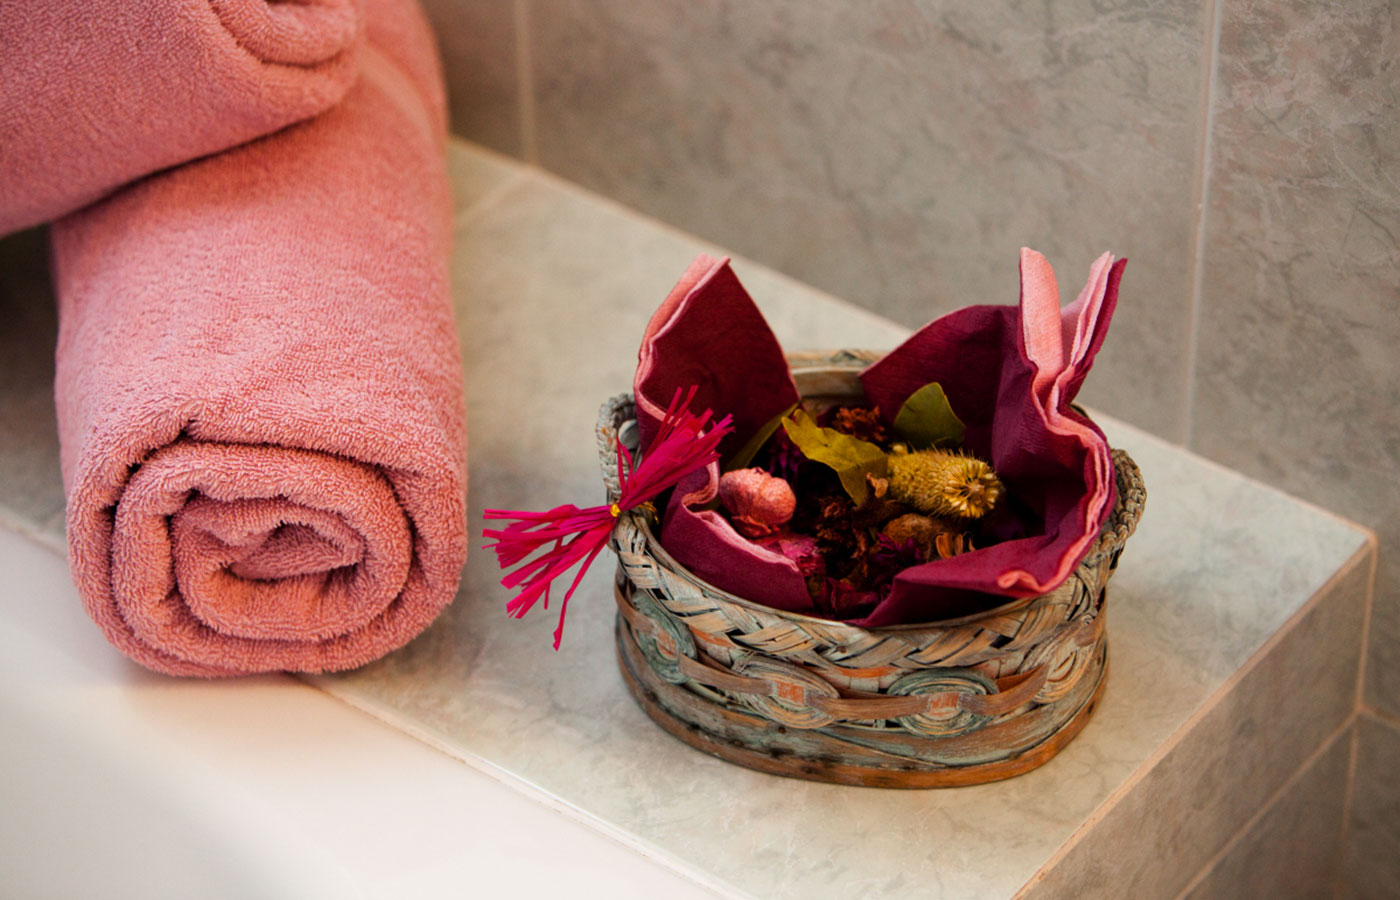 Detail of the bathroom with towels and fragrant potpourri